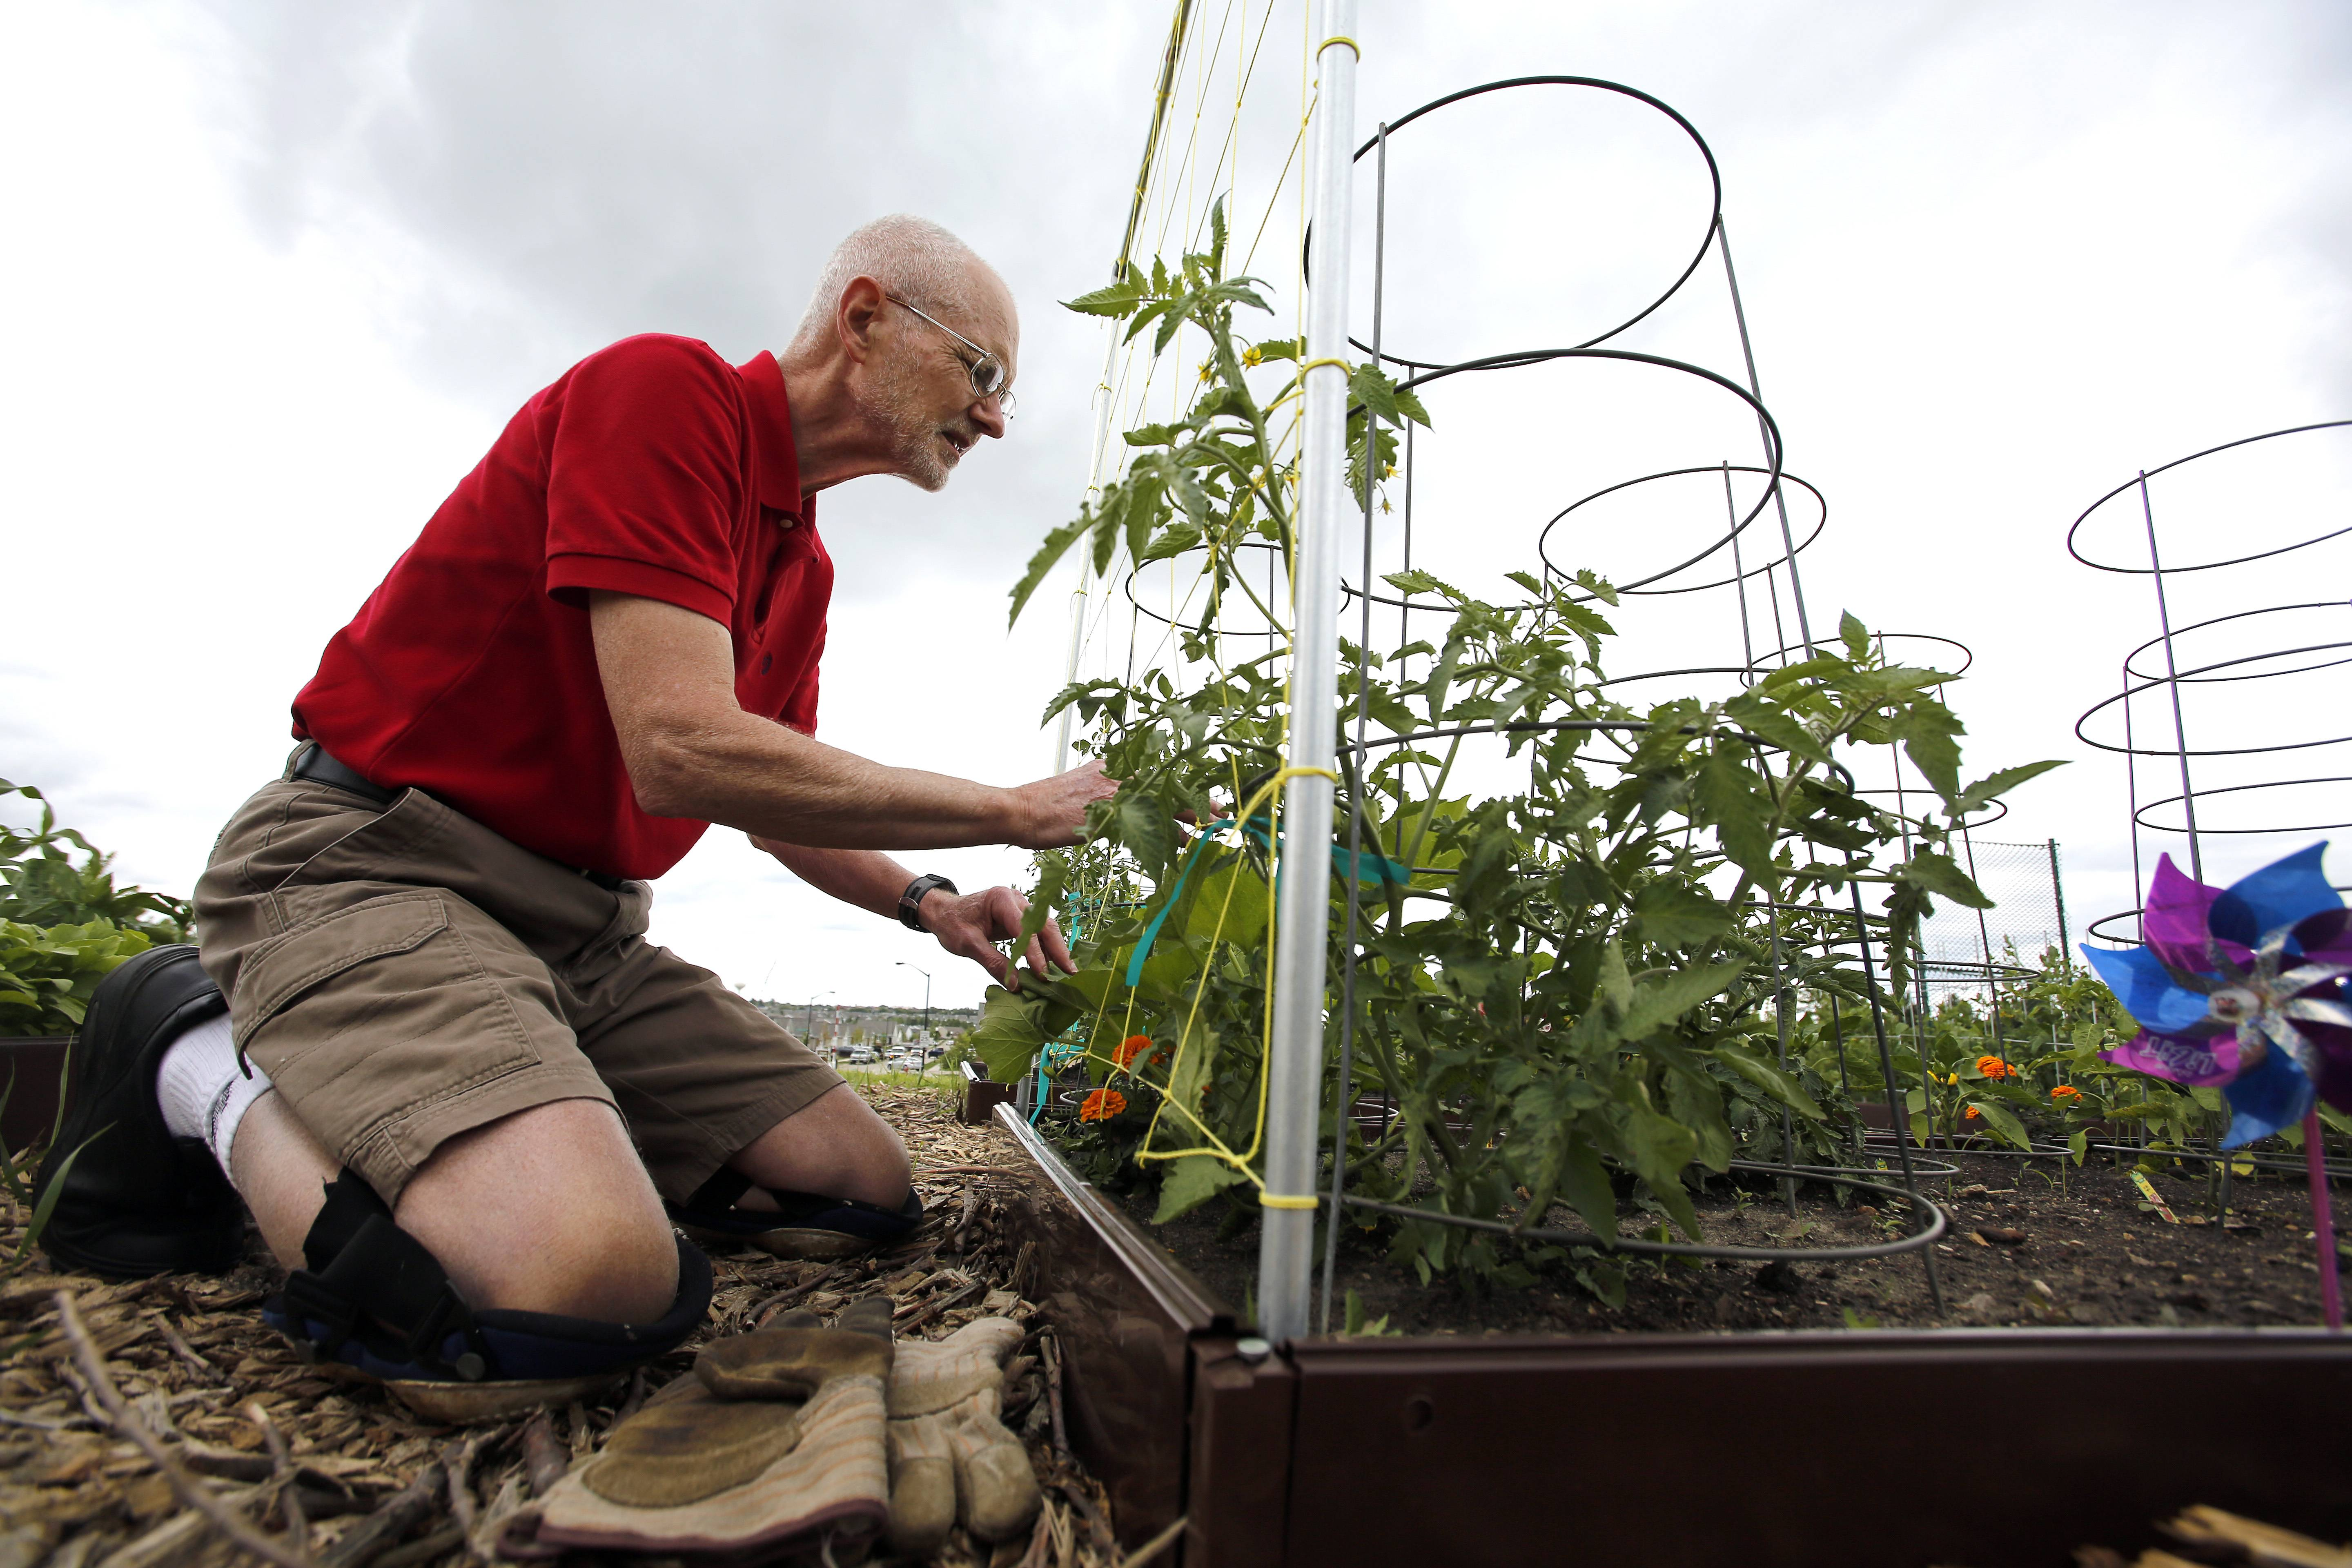 Rod Gohrke of Elgin tends to his community garden plot next to Elgin fire station No. 7 on Longcommon Parkway. The garden is part of the Elgin Fire Department's community service initiative, as gardeners are asked to donate some of the proceeds to Food for Greater Elgin.